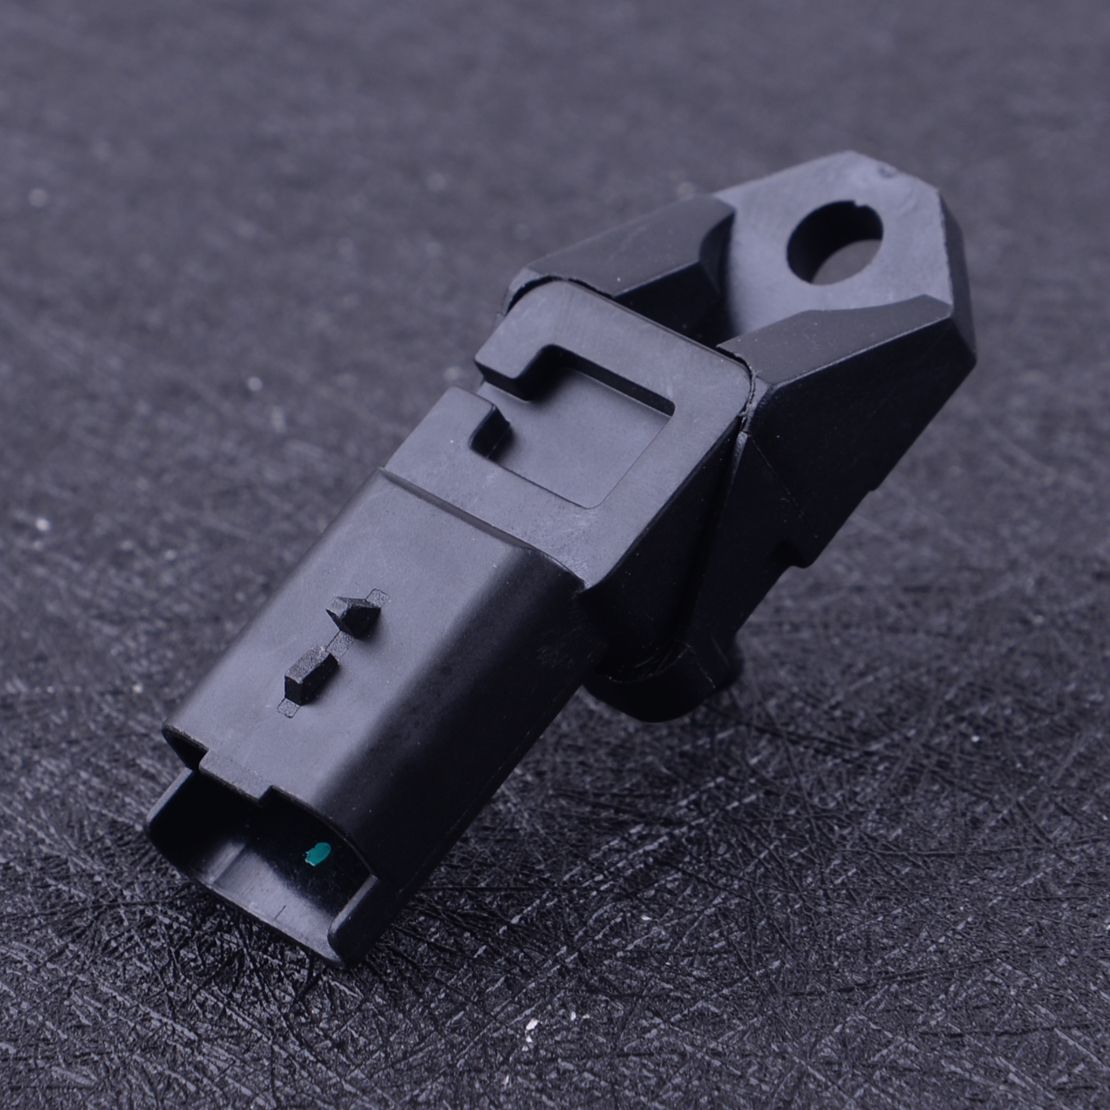 beler 3 Pins Black Plastic <font><b>Turbo</b></font> Boost Pressure MAP Sensor 9639469280 1231463 Fit for <font><b>Peugeot</b></font> 1007 206 307 <font><b>407</b></font> 1.6 <font><b>2.0</b></font> <font><b>HDI</b></font> image